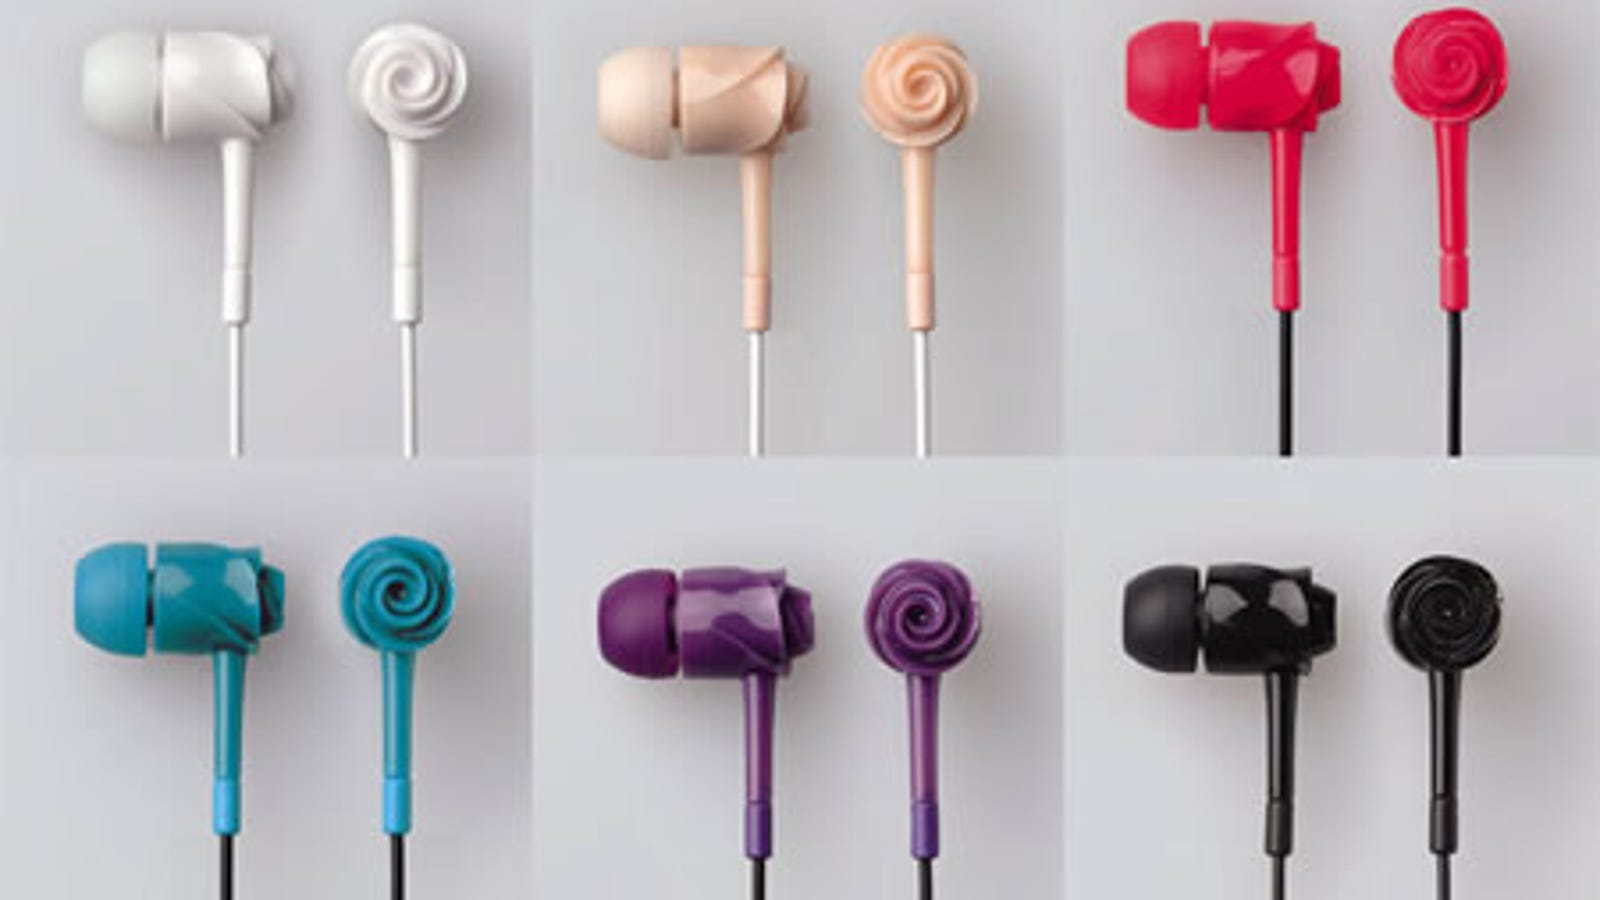 iphone earbuds replacement - Elecom Rose EarDrops Phones: Rosebuds for Your Ears